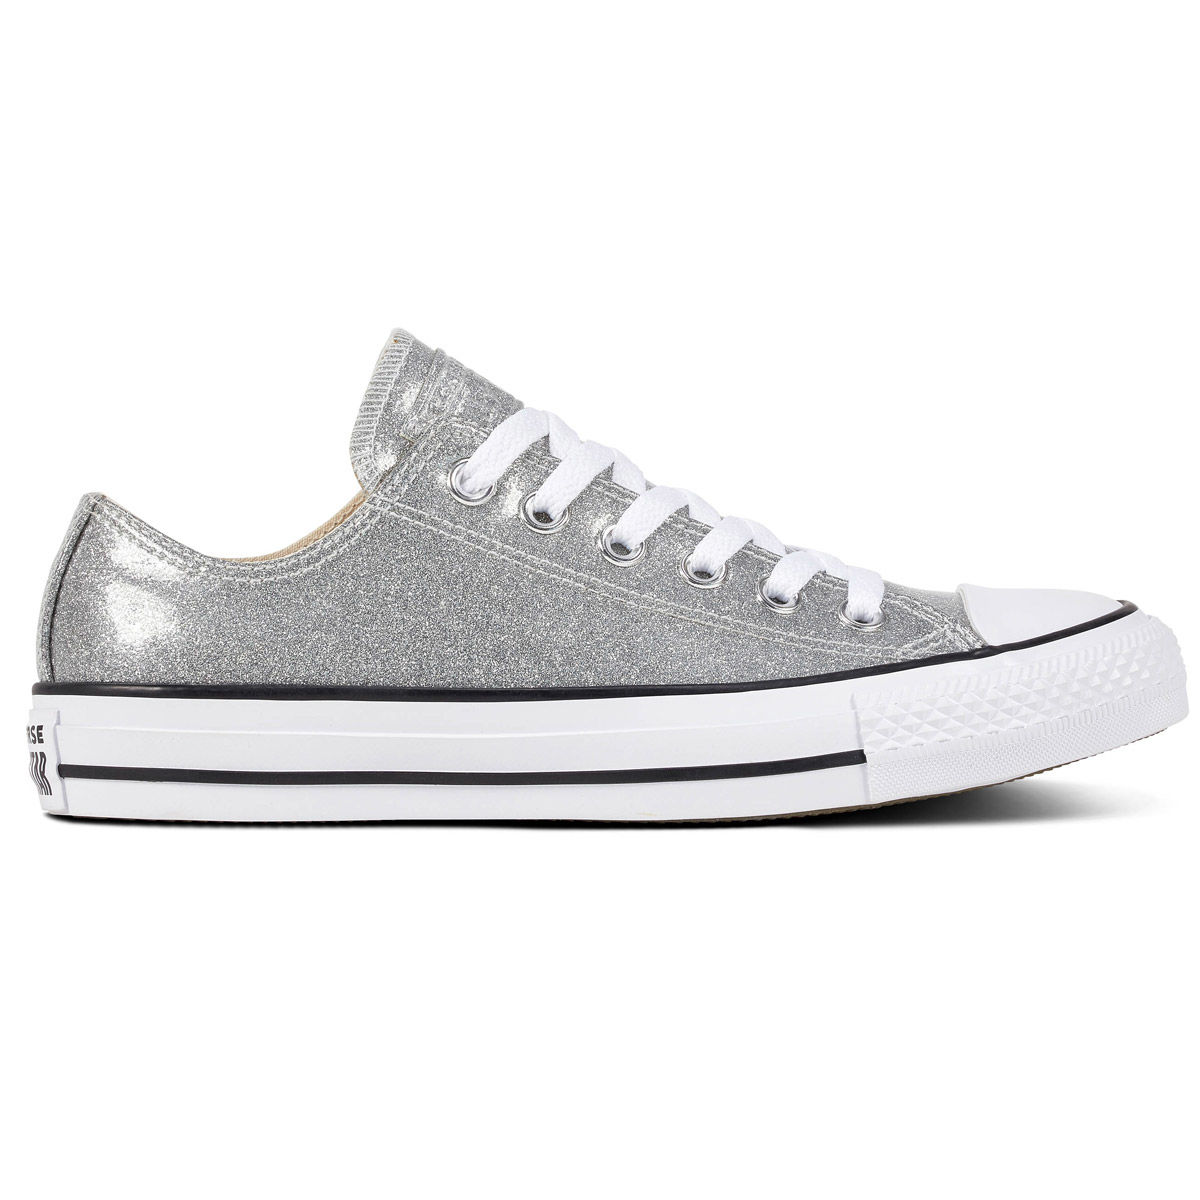 Converse Chuck Taylor All Star Wonderland Womens Casual Shoe